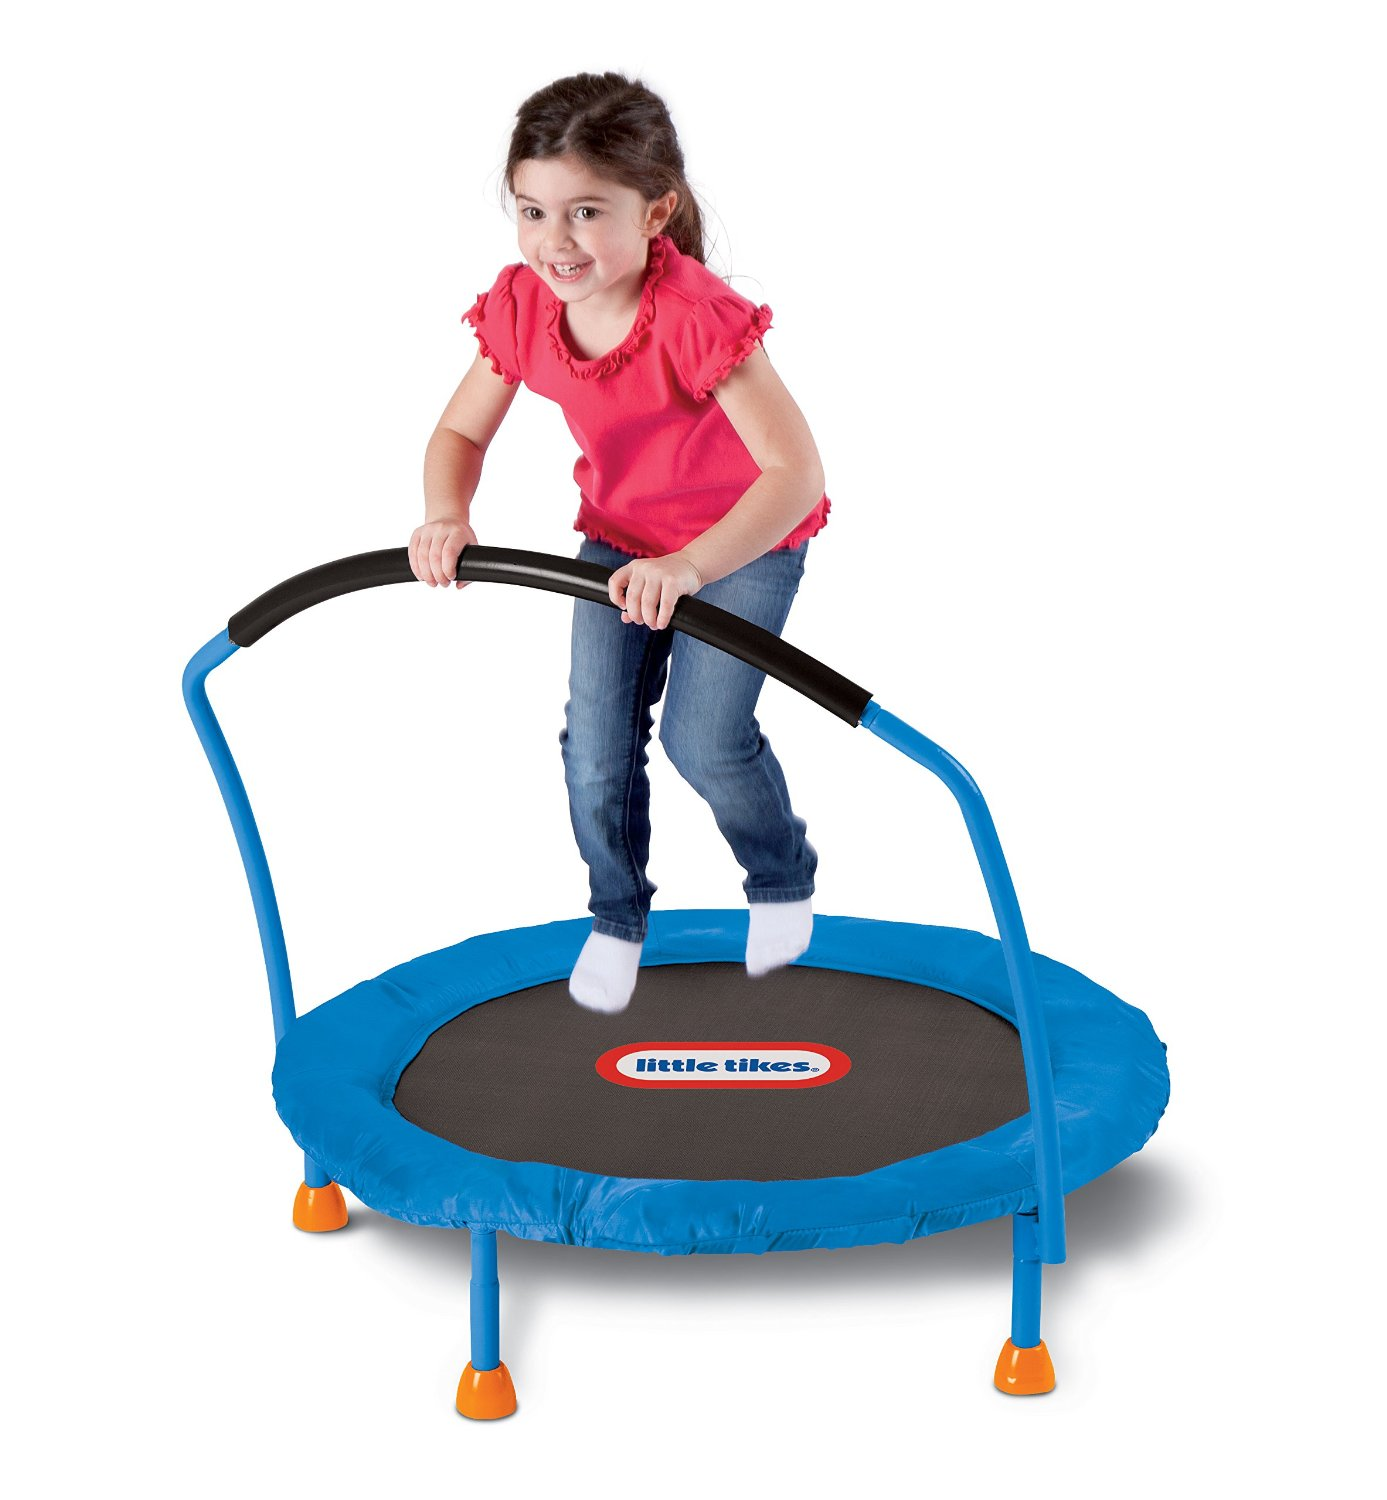 Top 10 Best Toddler Trampoline Reviews — Your Ultimate Guide (2019)